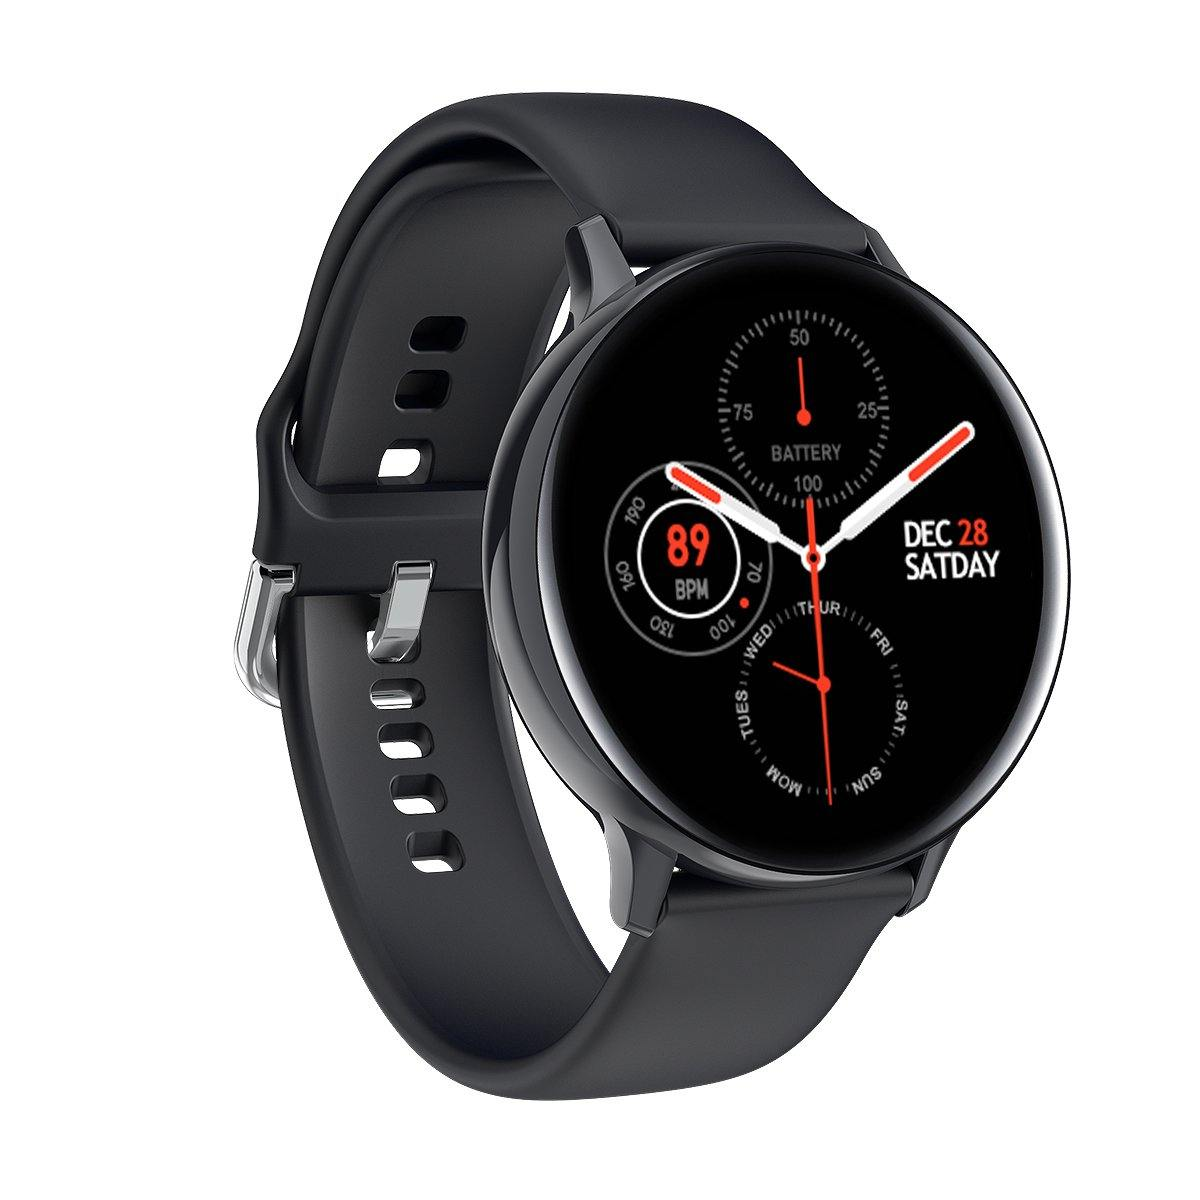 Microwear S20 Fitness/Smartwatch - Black Silicon